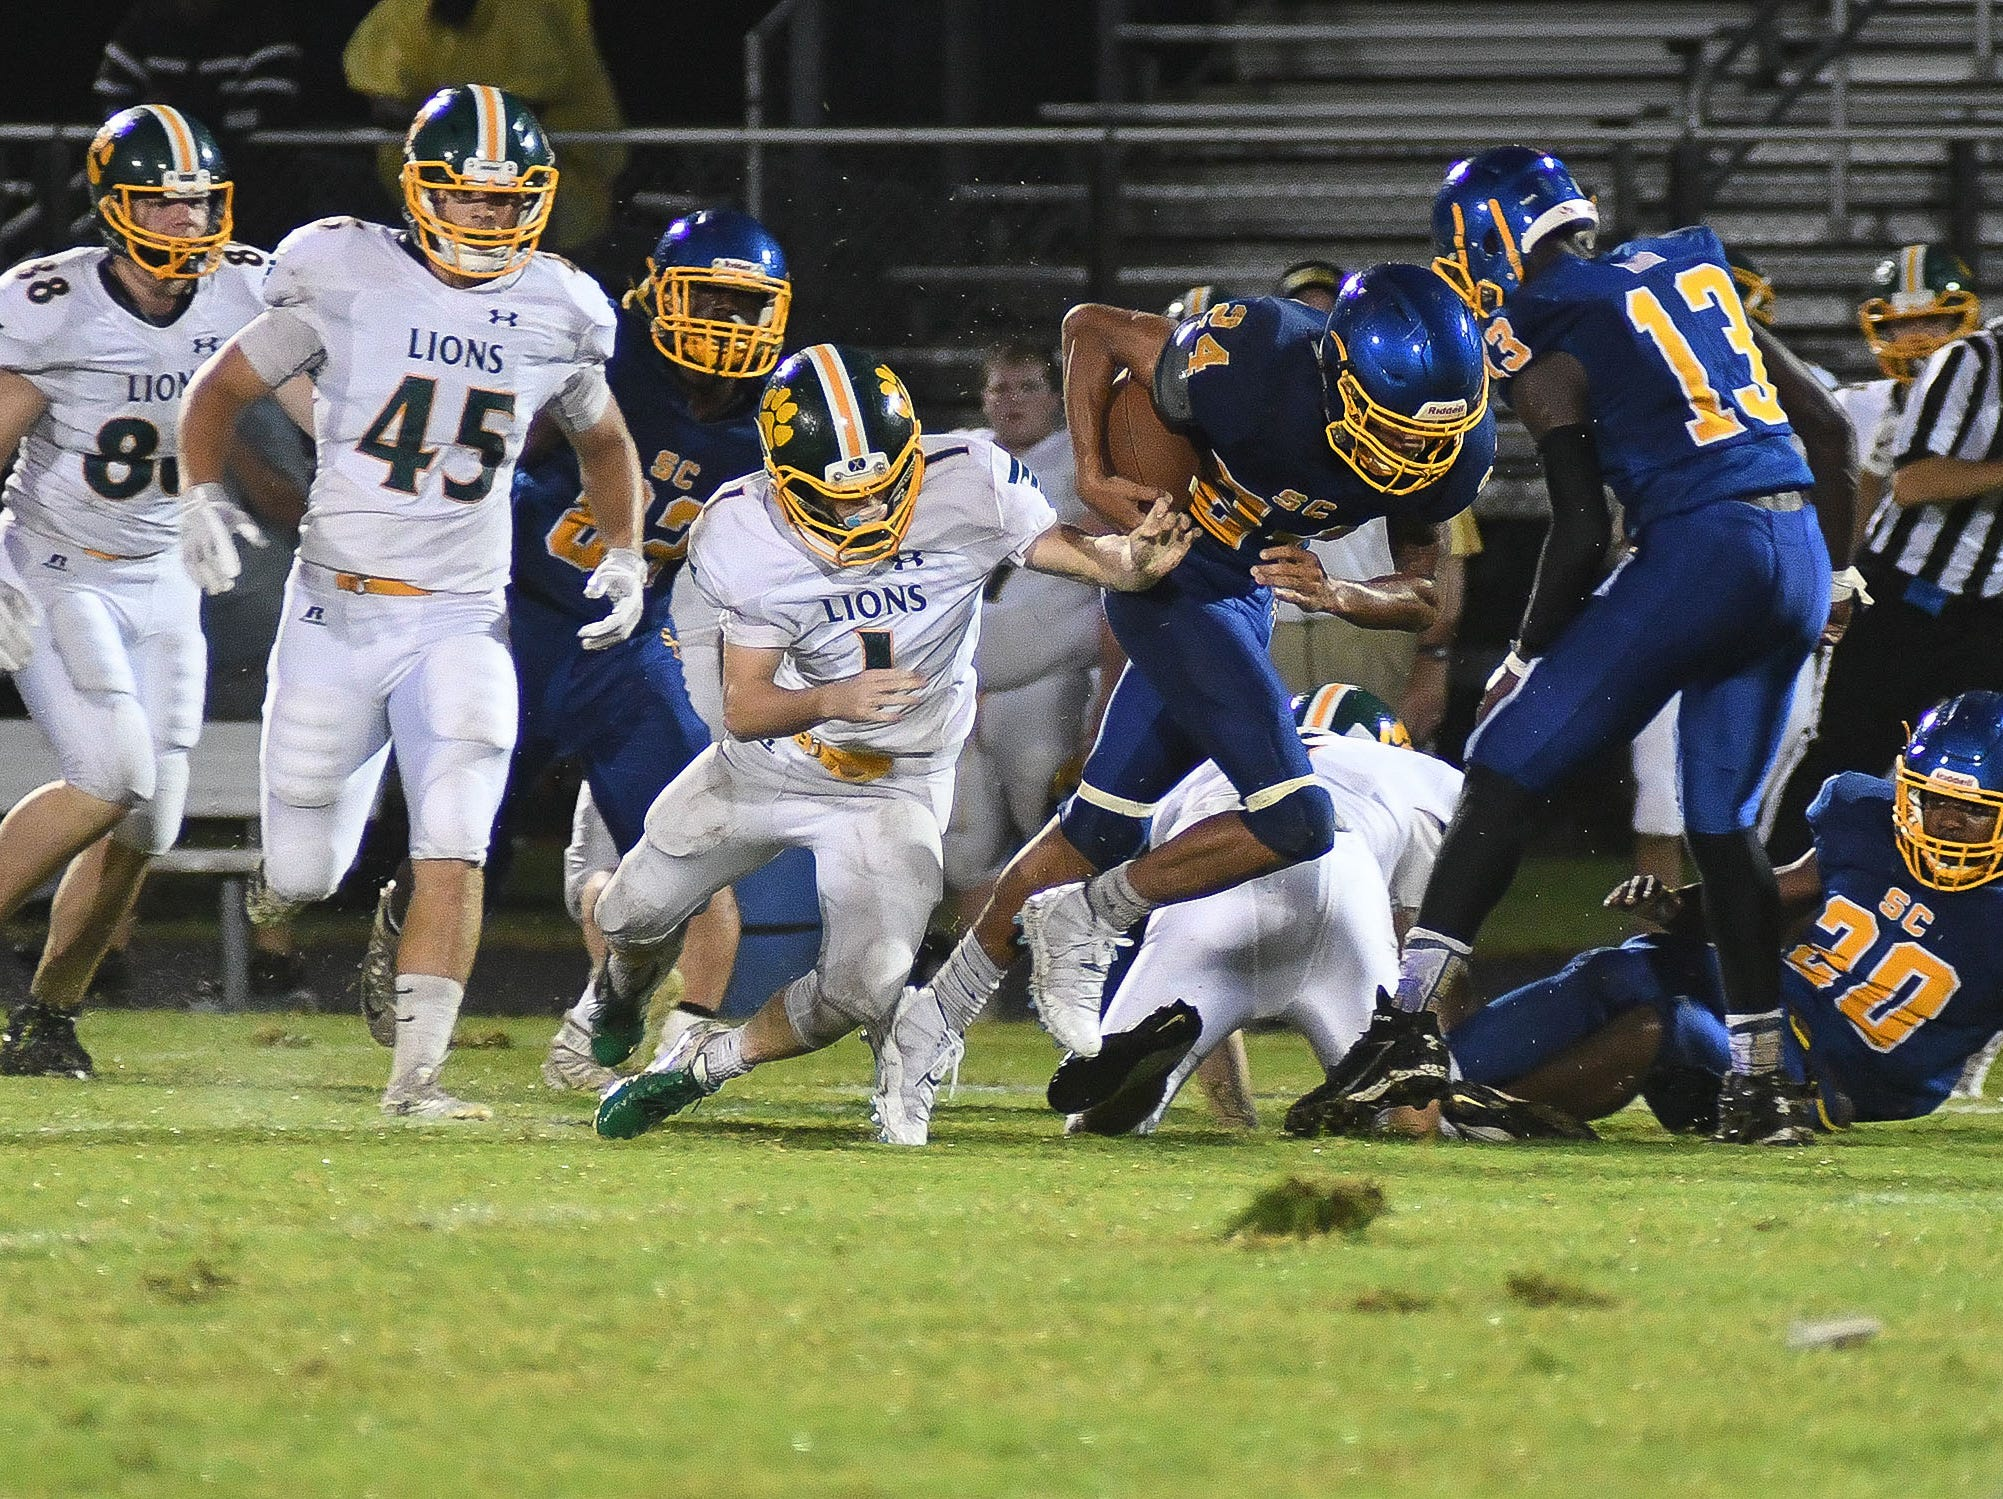 Sussex Central's Isaiah Barnes (24) runs the ball against Queen Anne on Friday, Sept. 14, 2018.